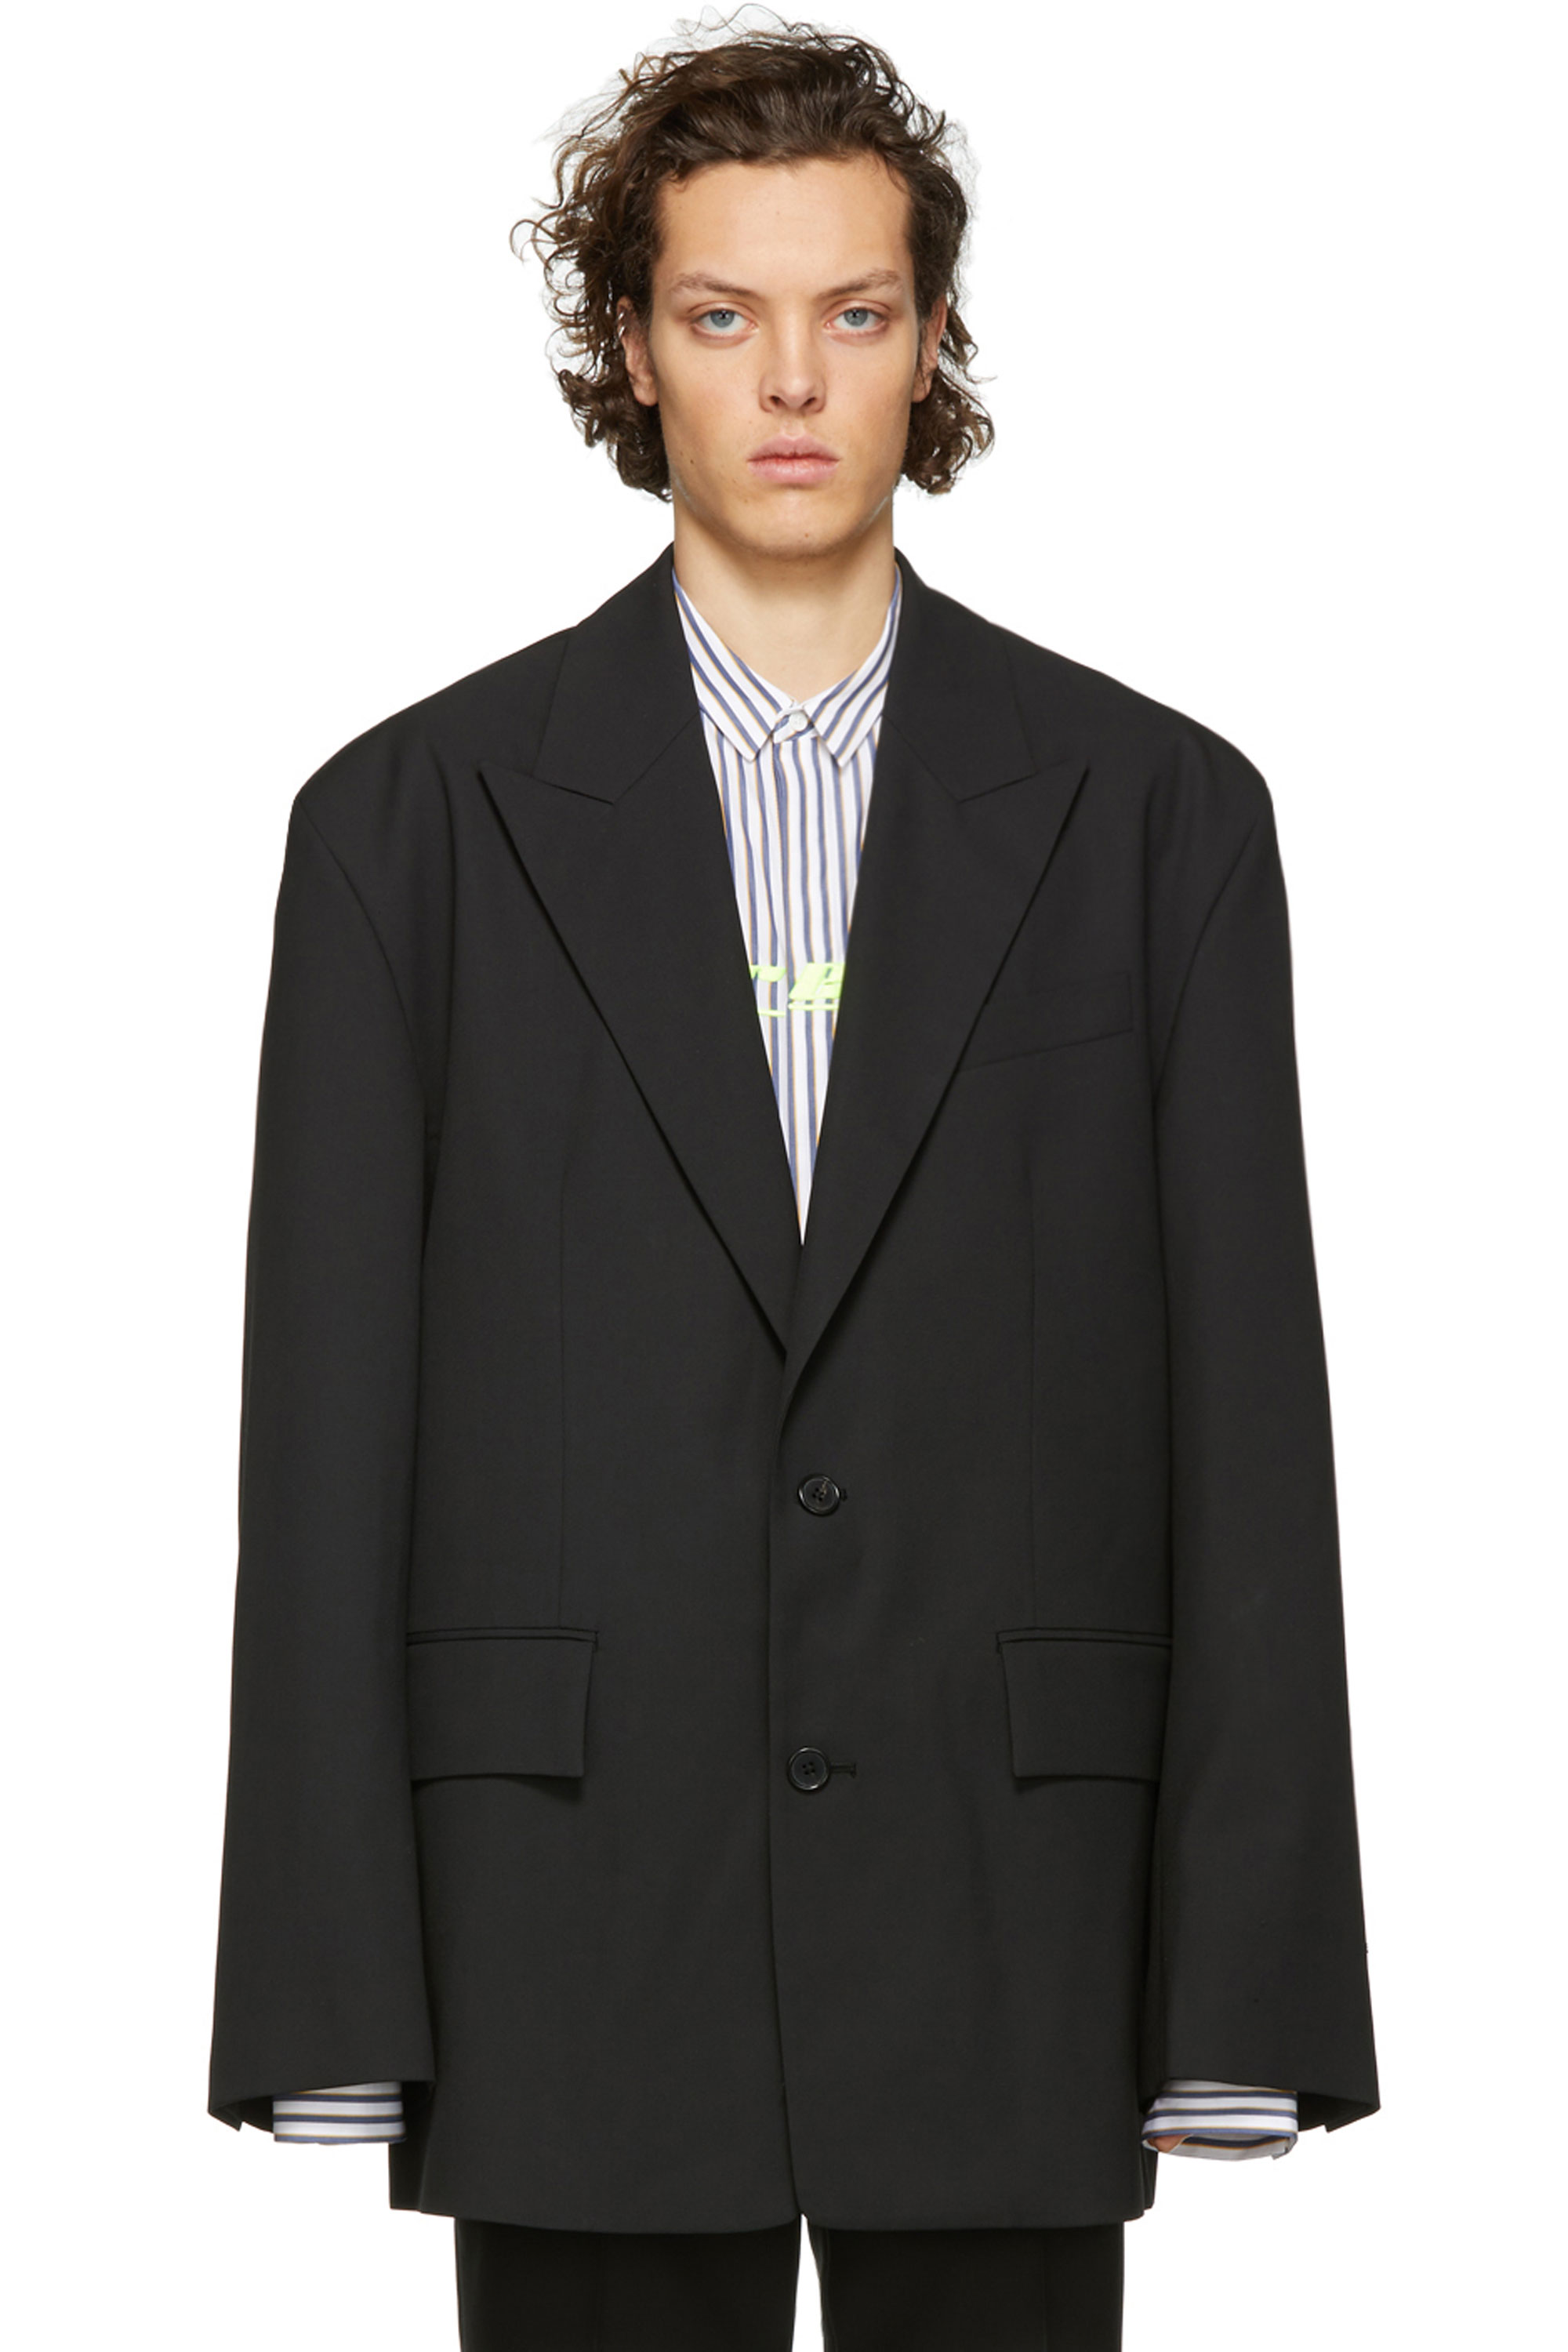 JJ Oversized Blazer SETUP! -BLACK,CHECK -COLLECTION FIT-